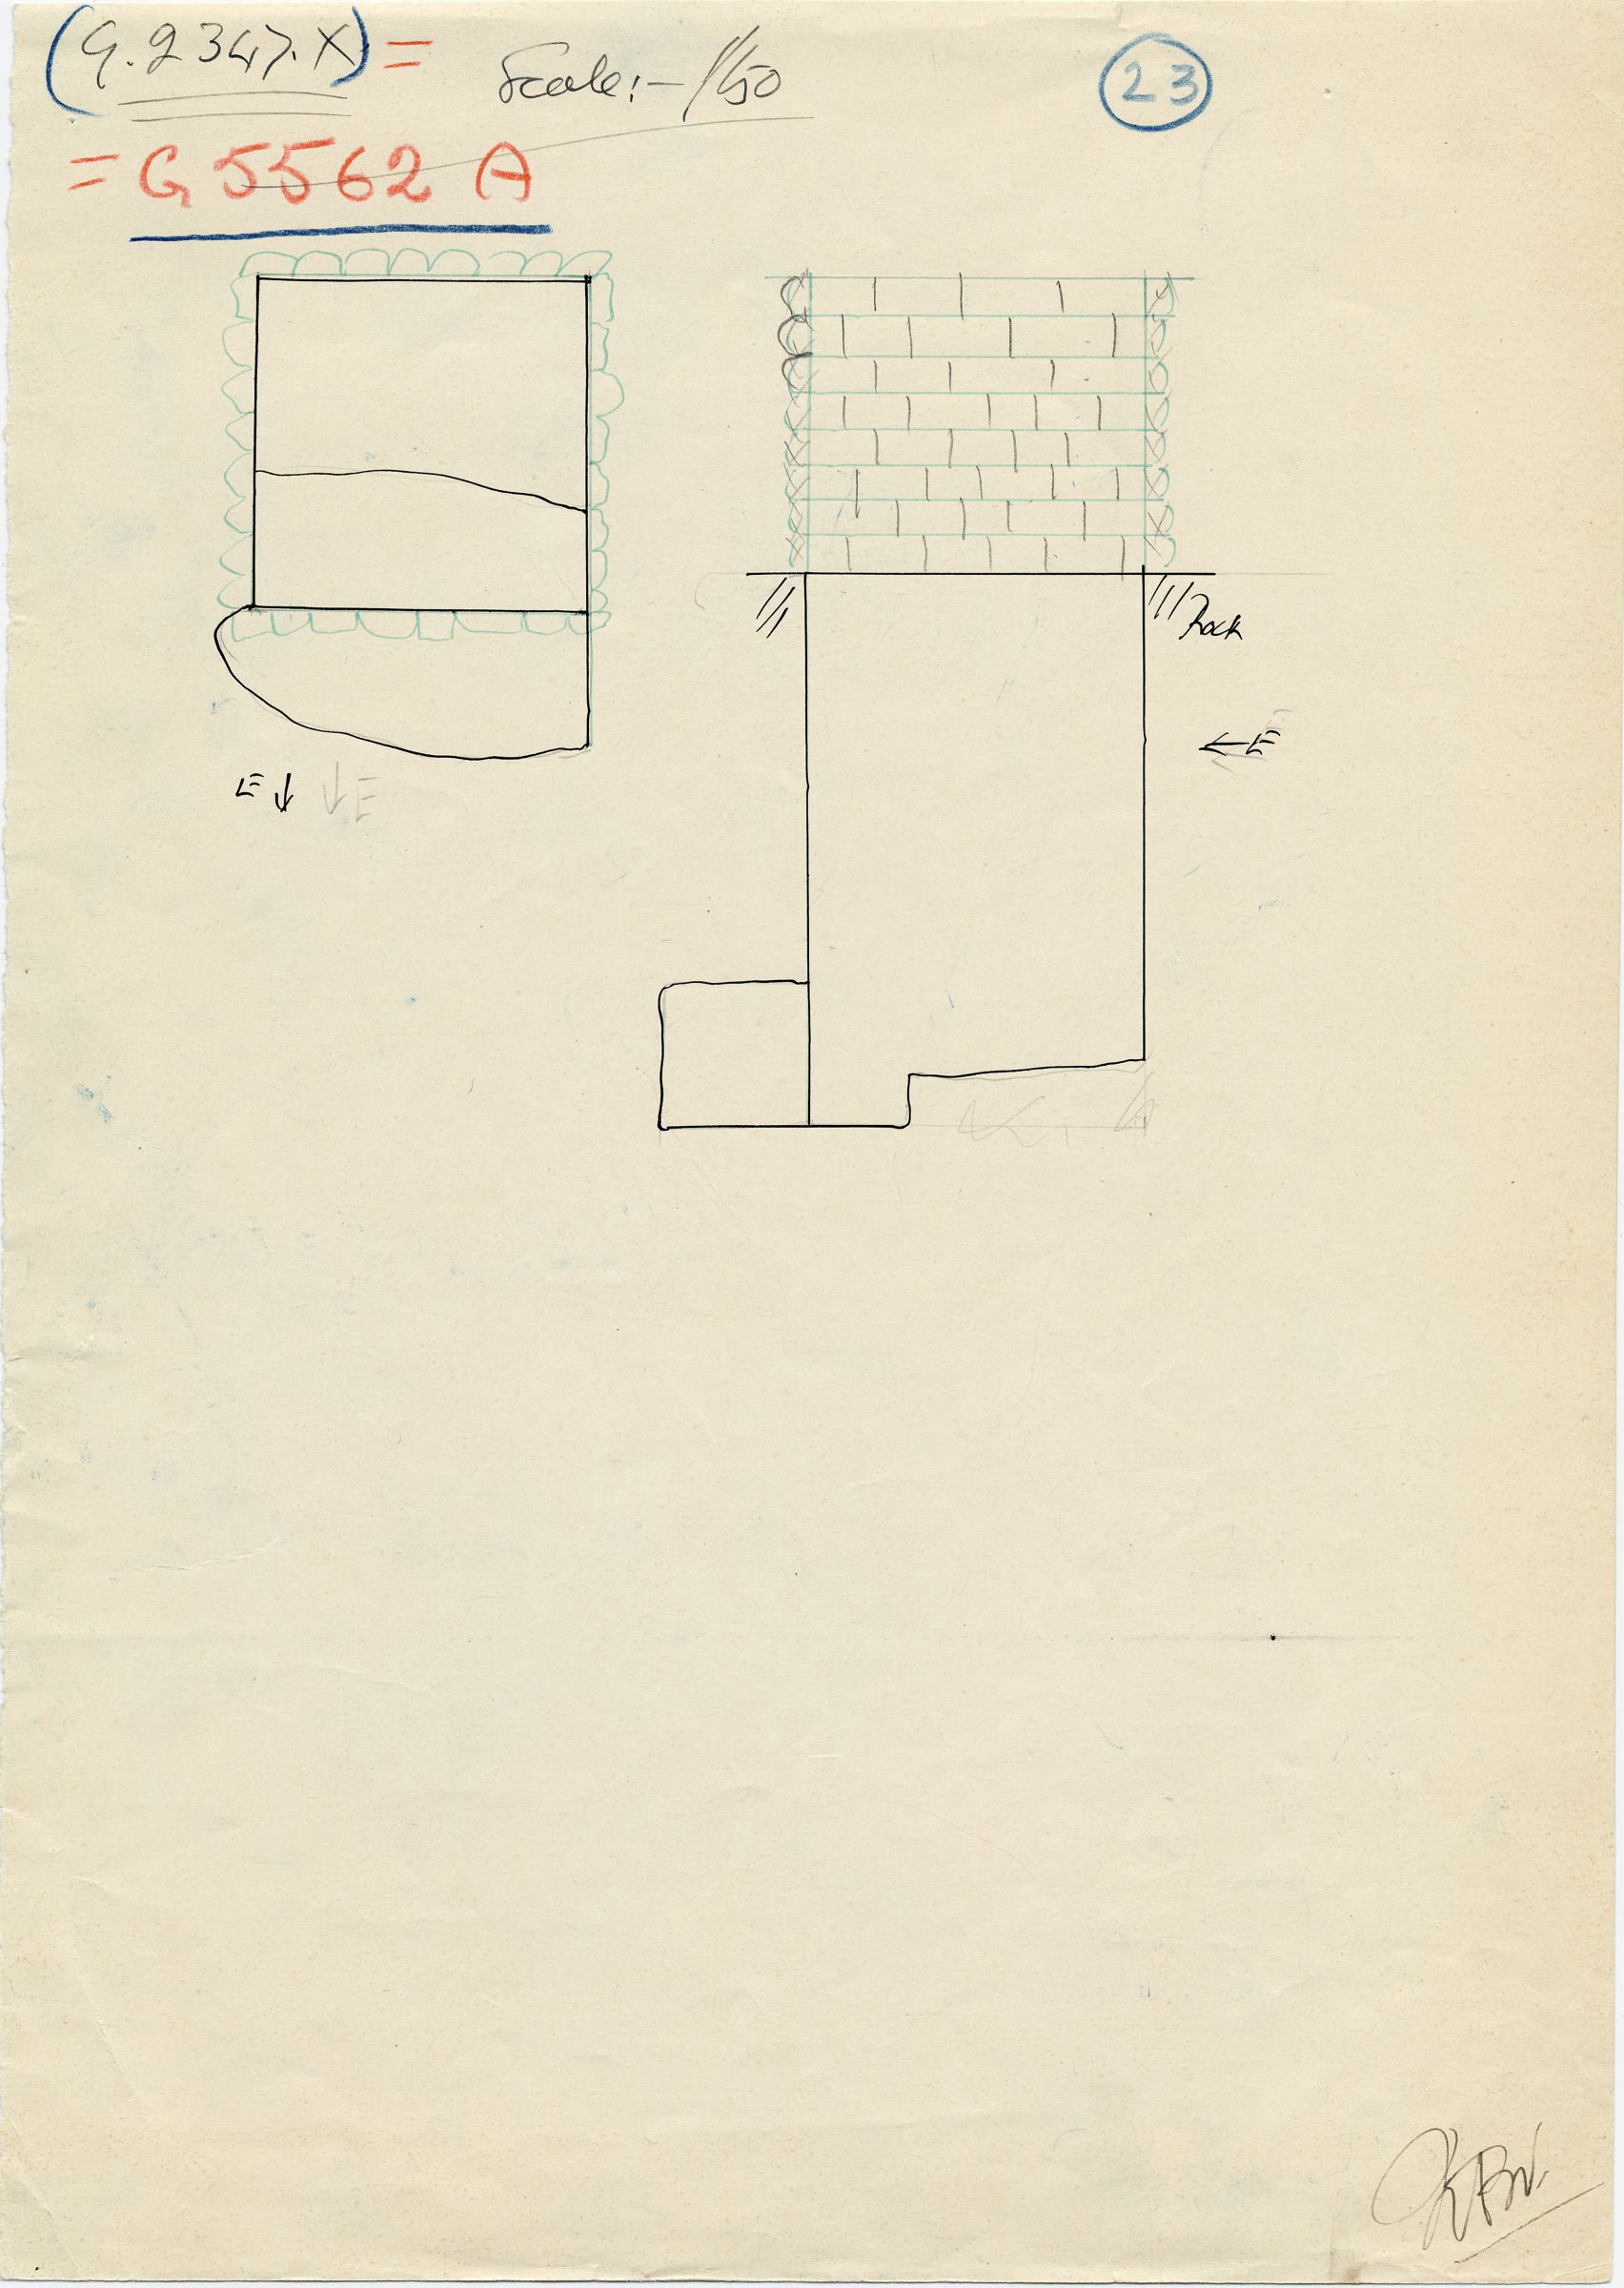 Maps and plans: G 2347 X = G 5562, Shaft A